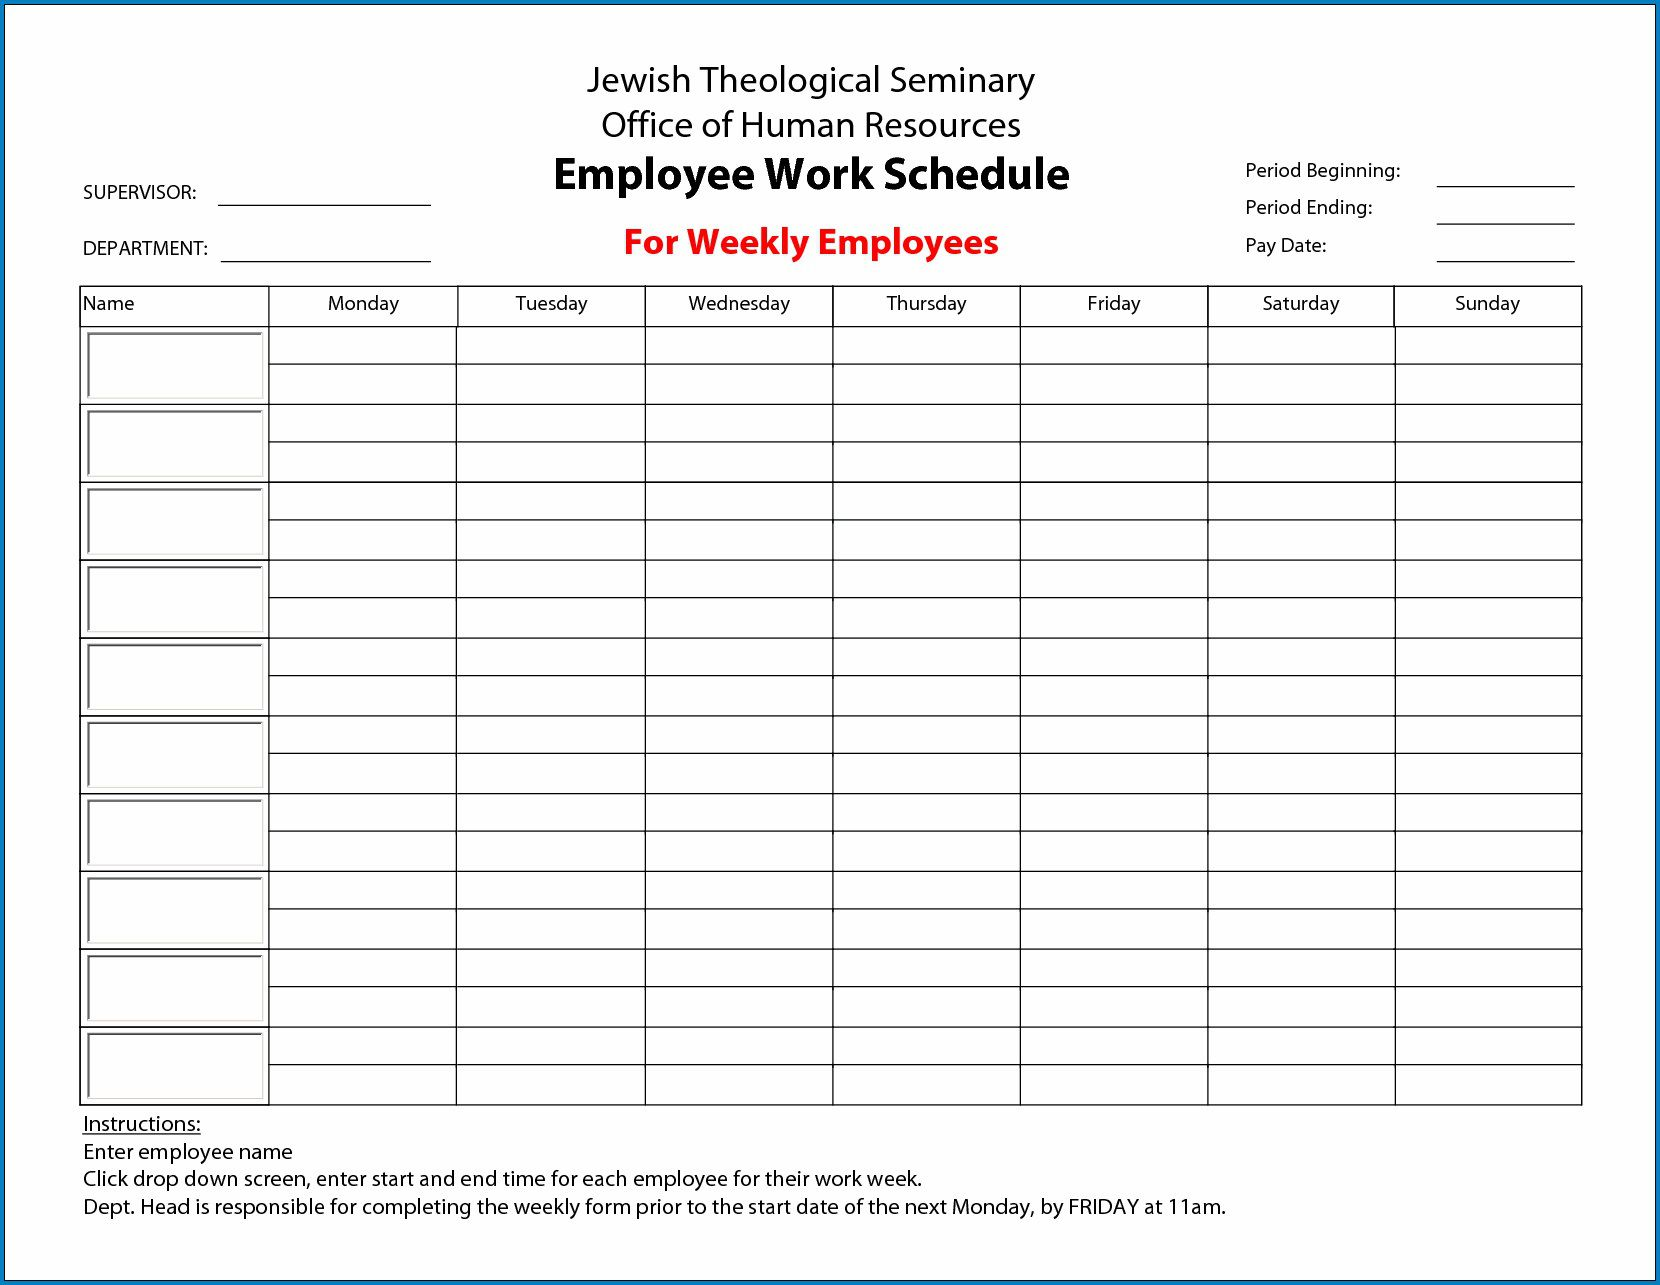 009 Fascinating Employee Schedule Template Free Image  Downloadable Weekly Work Training Excel ShiftFull